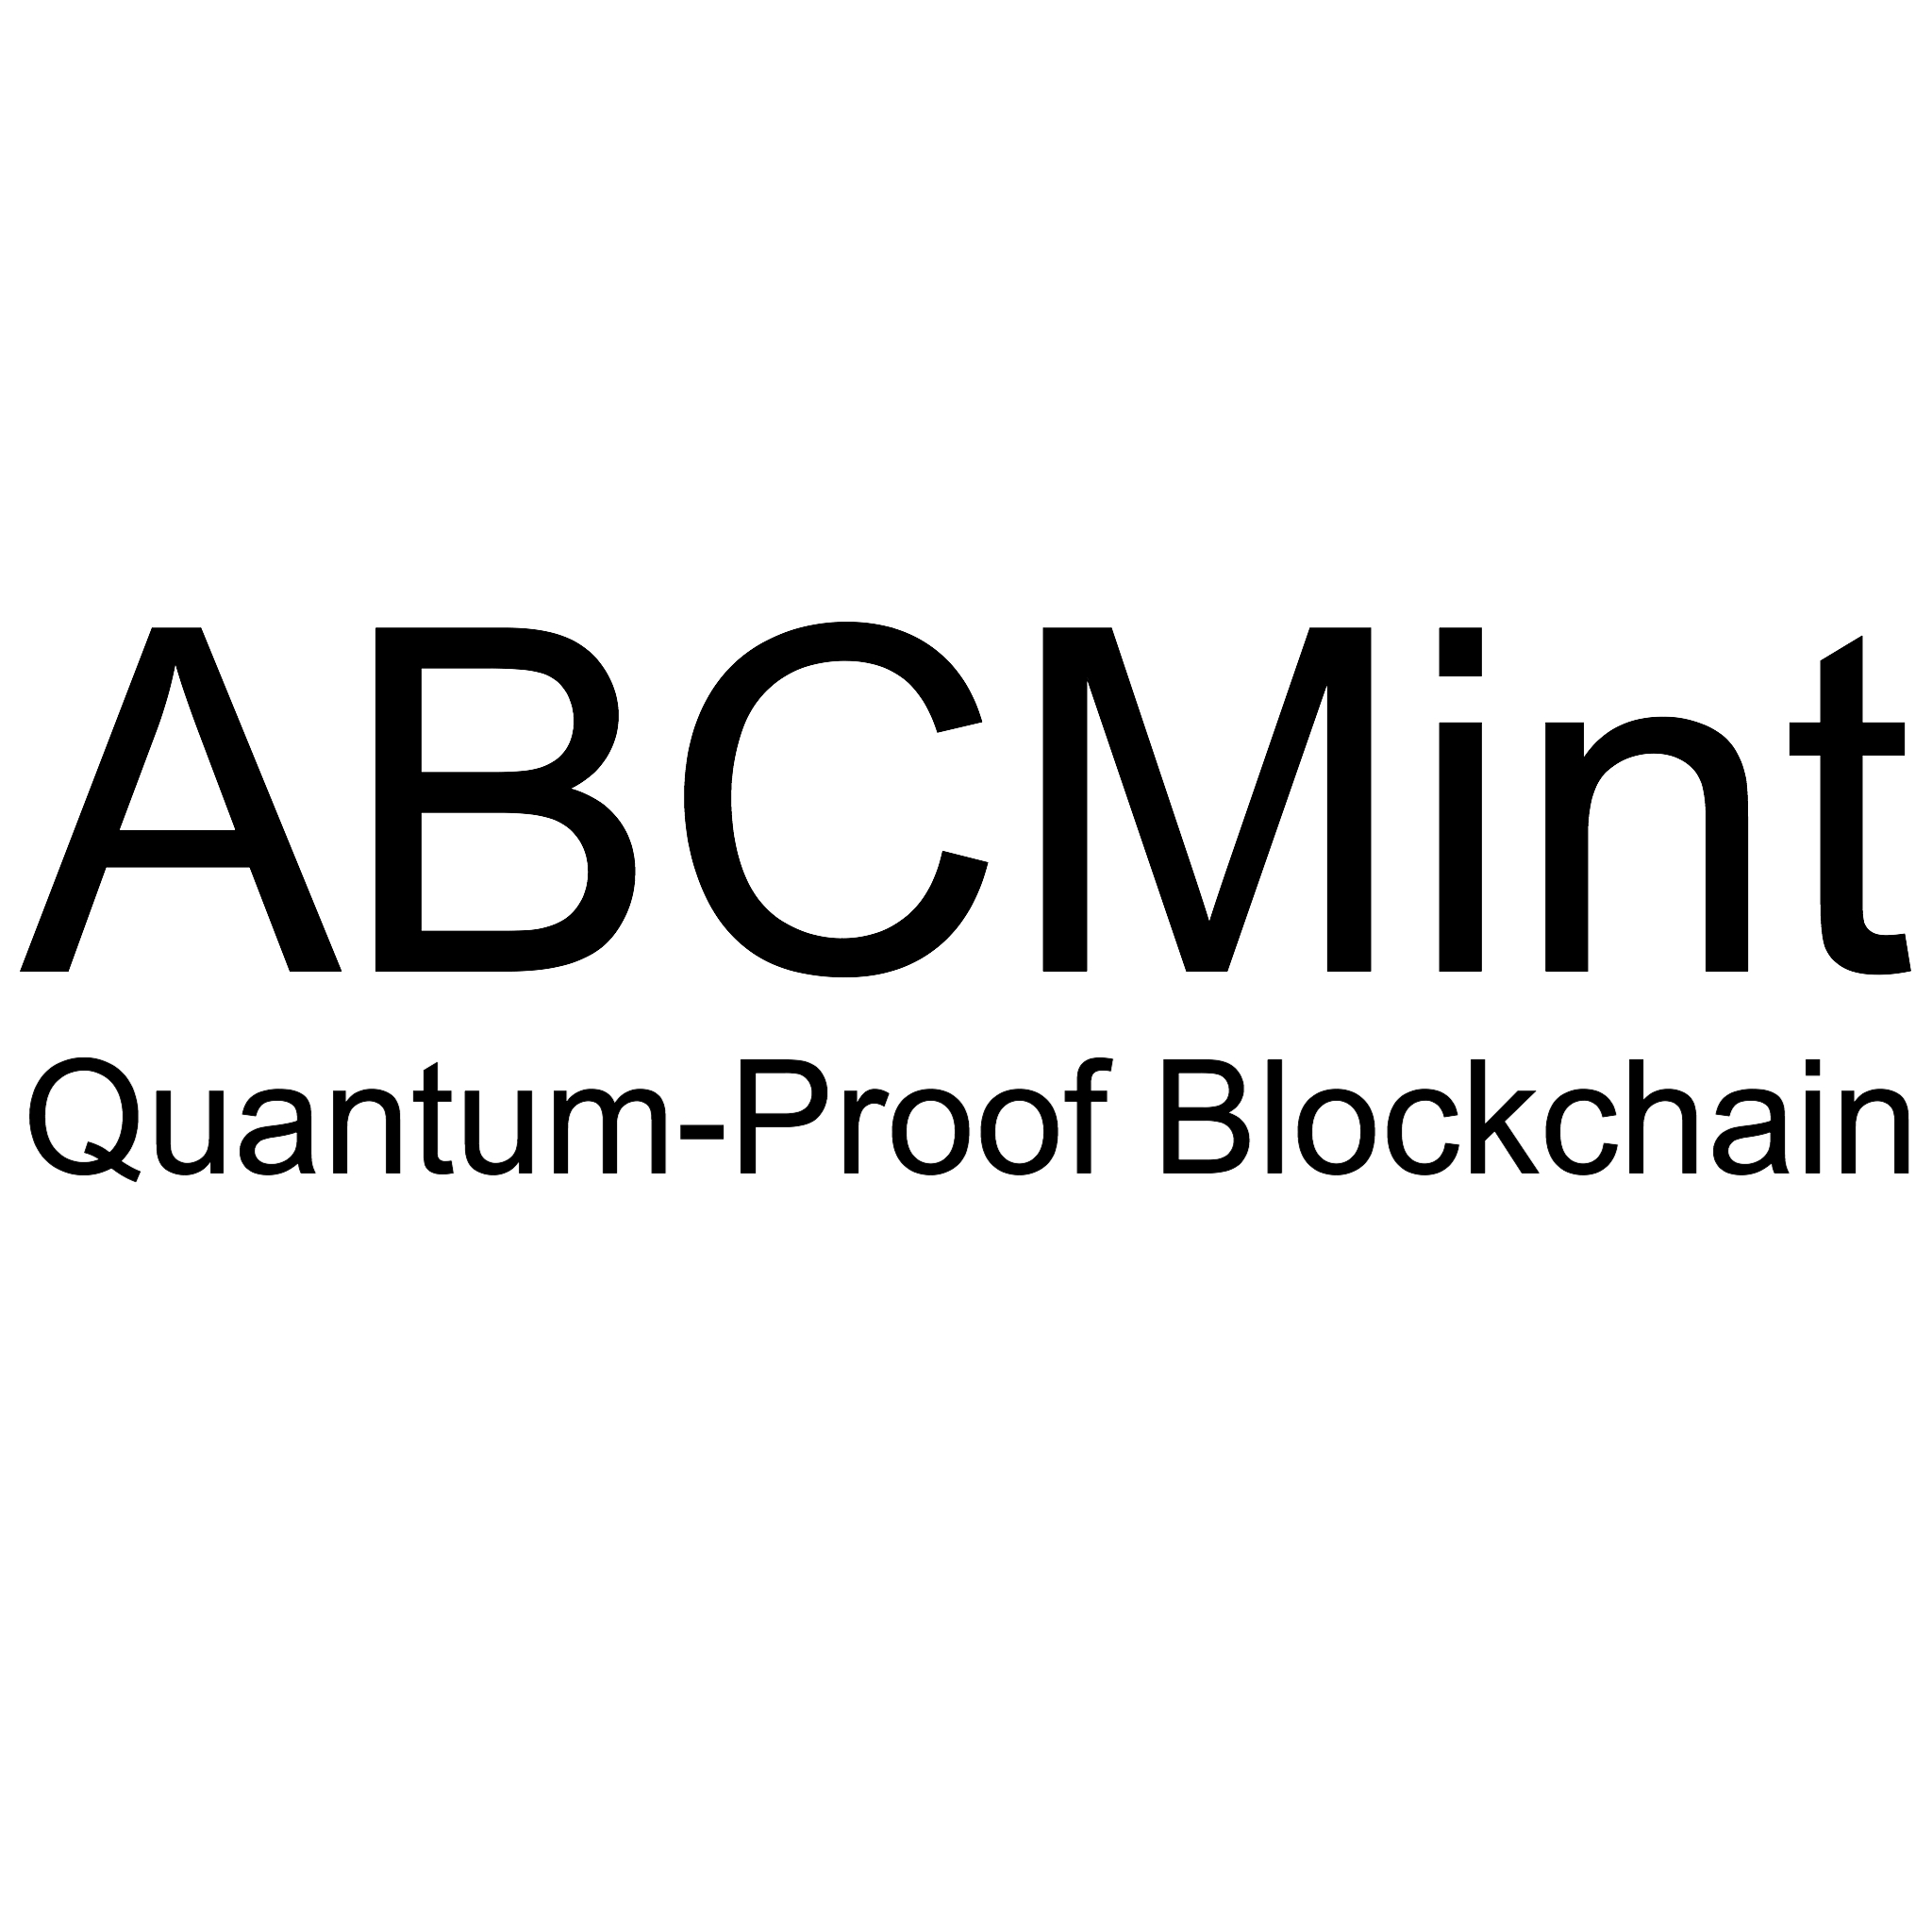 ABCmint Foundation